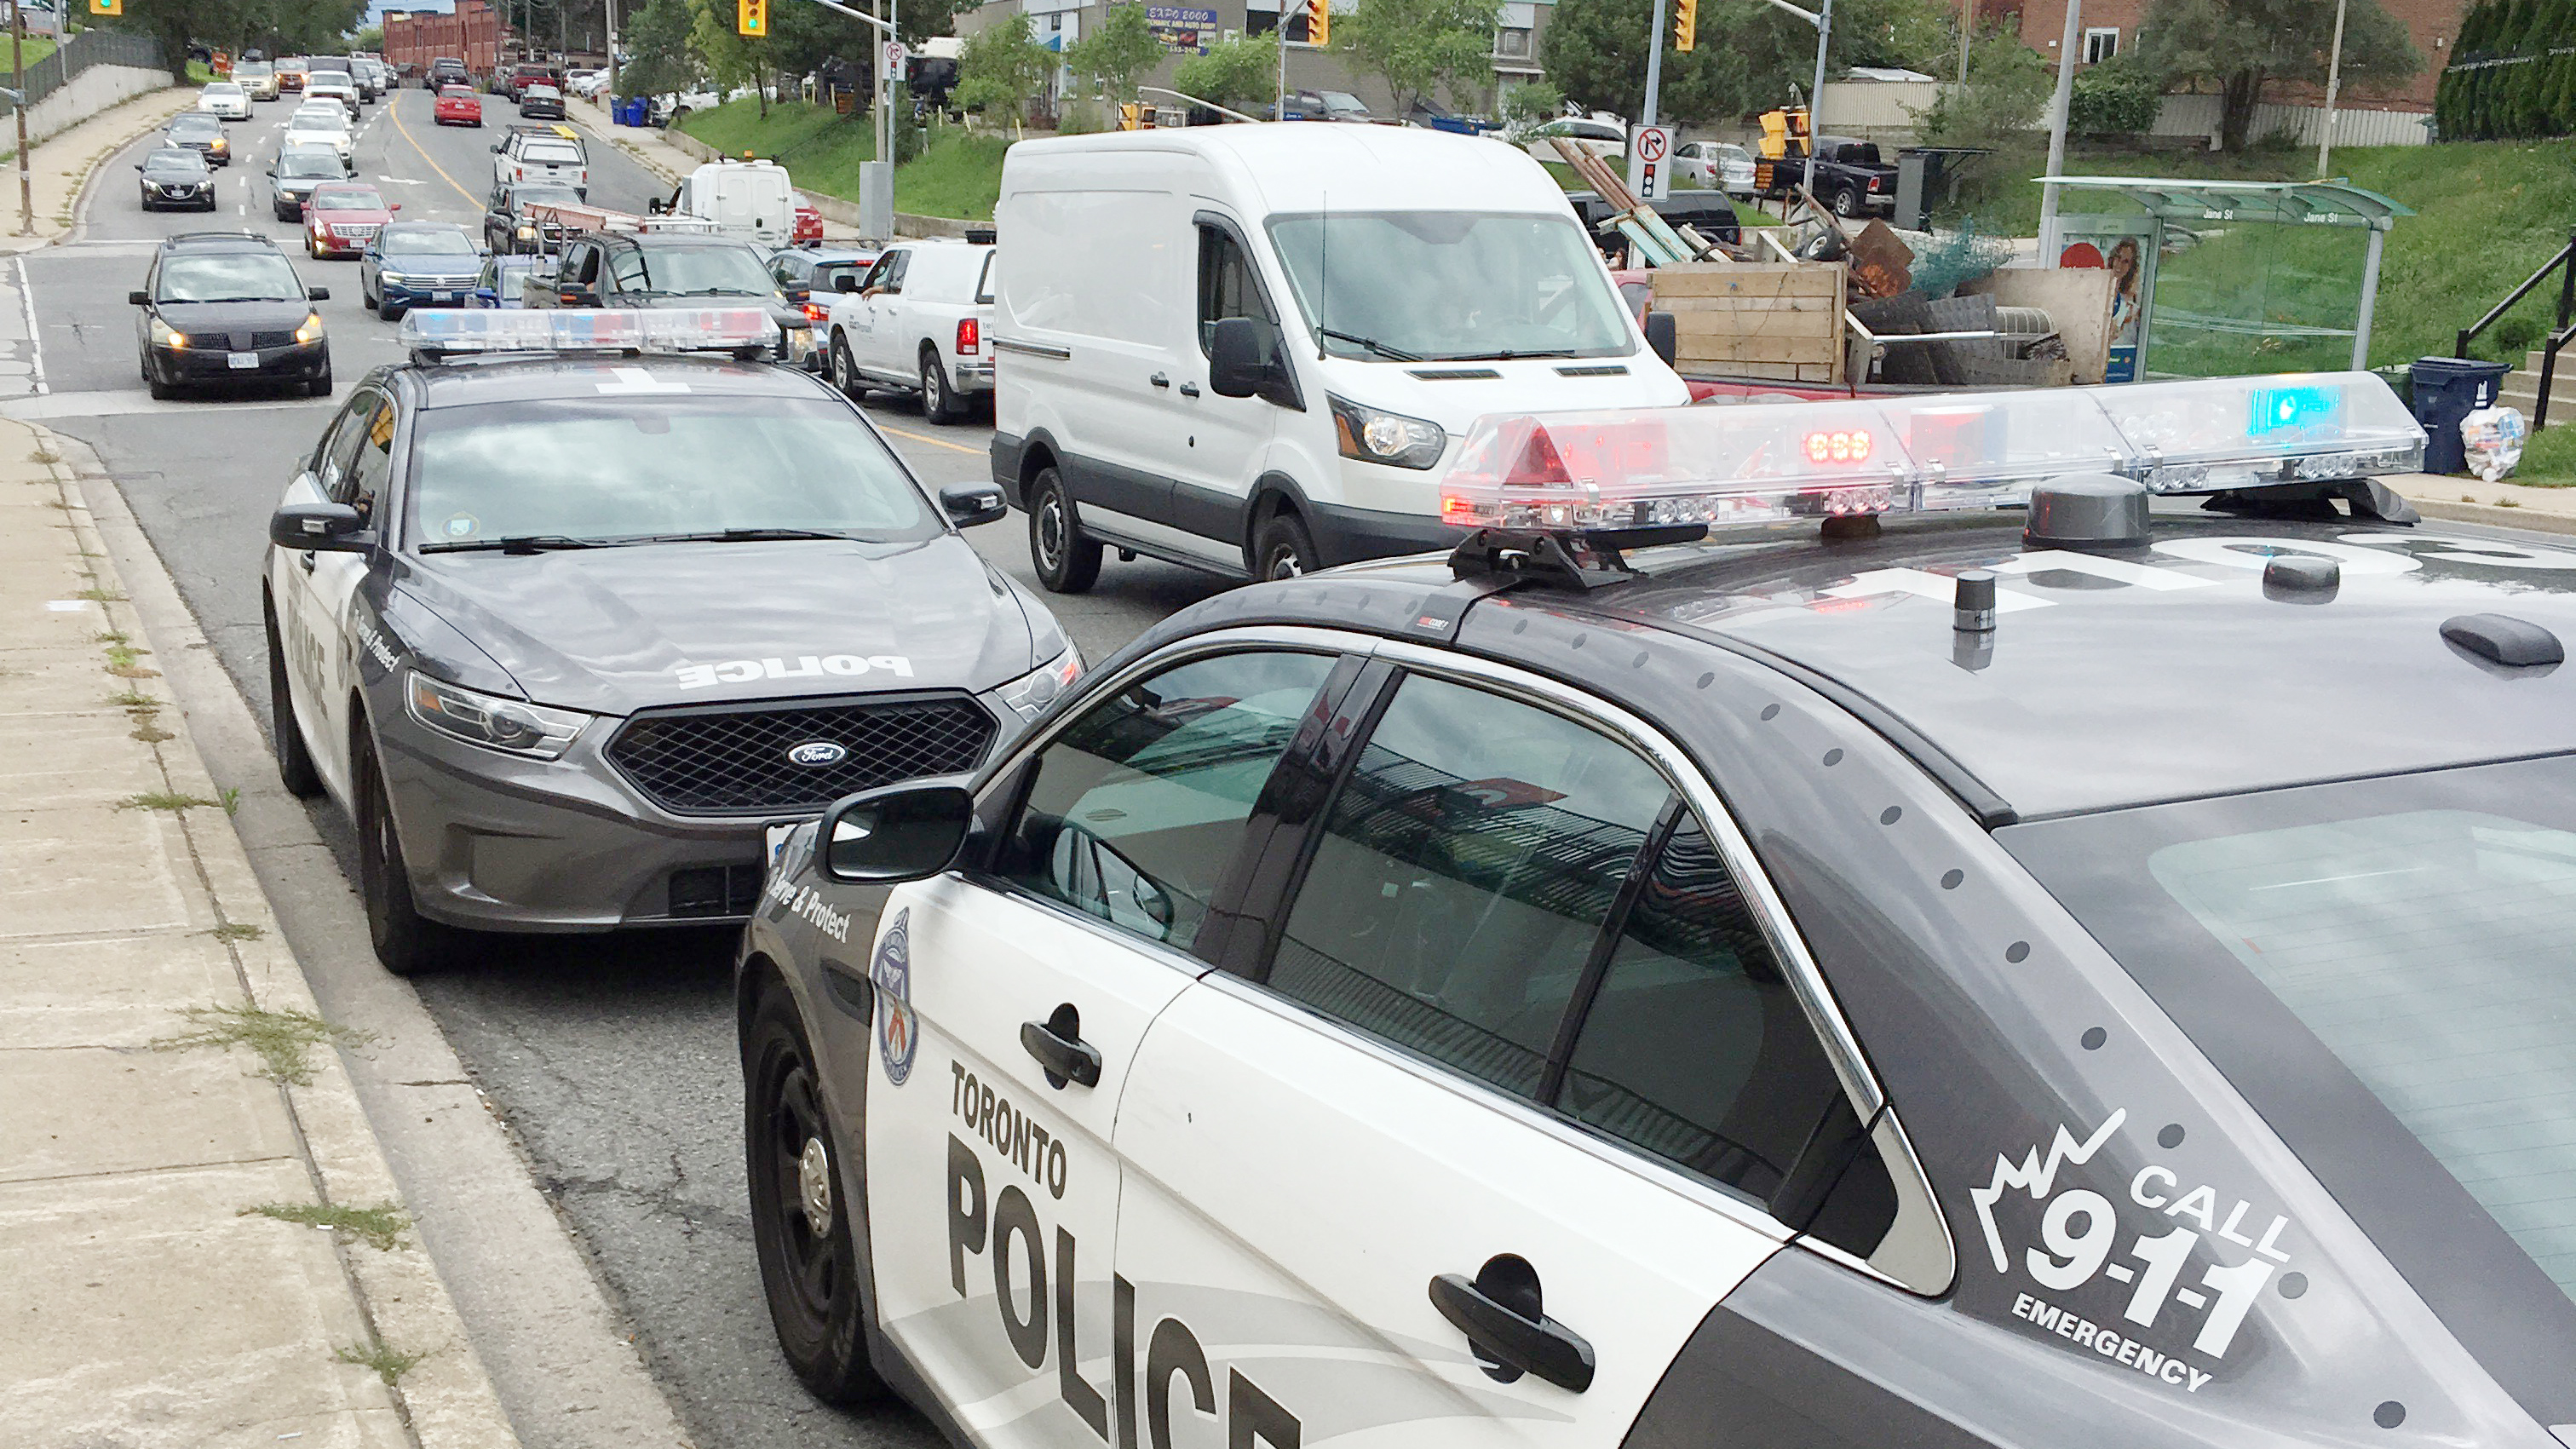 Police cruisers parked near the scene of a shooting near Jane Street and St. Clair Avenue West in Toronto on Aug. 29, 2018. CITYNEWS/Peter Dworschak